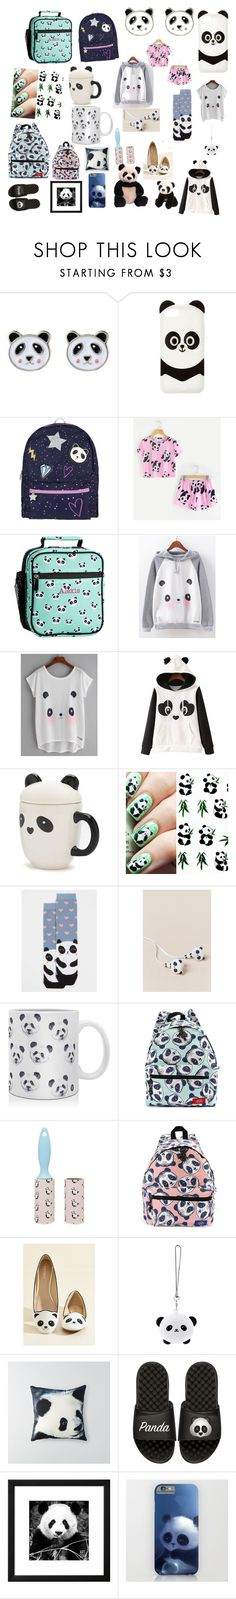 """PANDA MANIA!!!"" by natalie83322 ❤ liked on Polyvore featuring beauty, Accessorize, Charlotte Russe, PBteen, WithChic, Forever 21, Dorothy Perkins, OK Originals, DENY Designs and TONYMOLY"